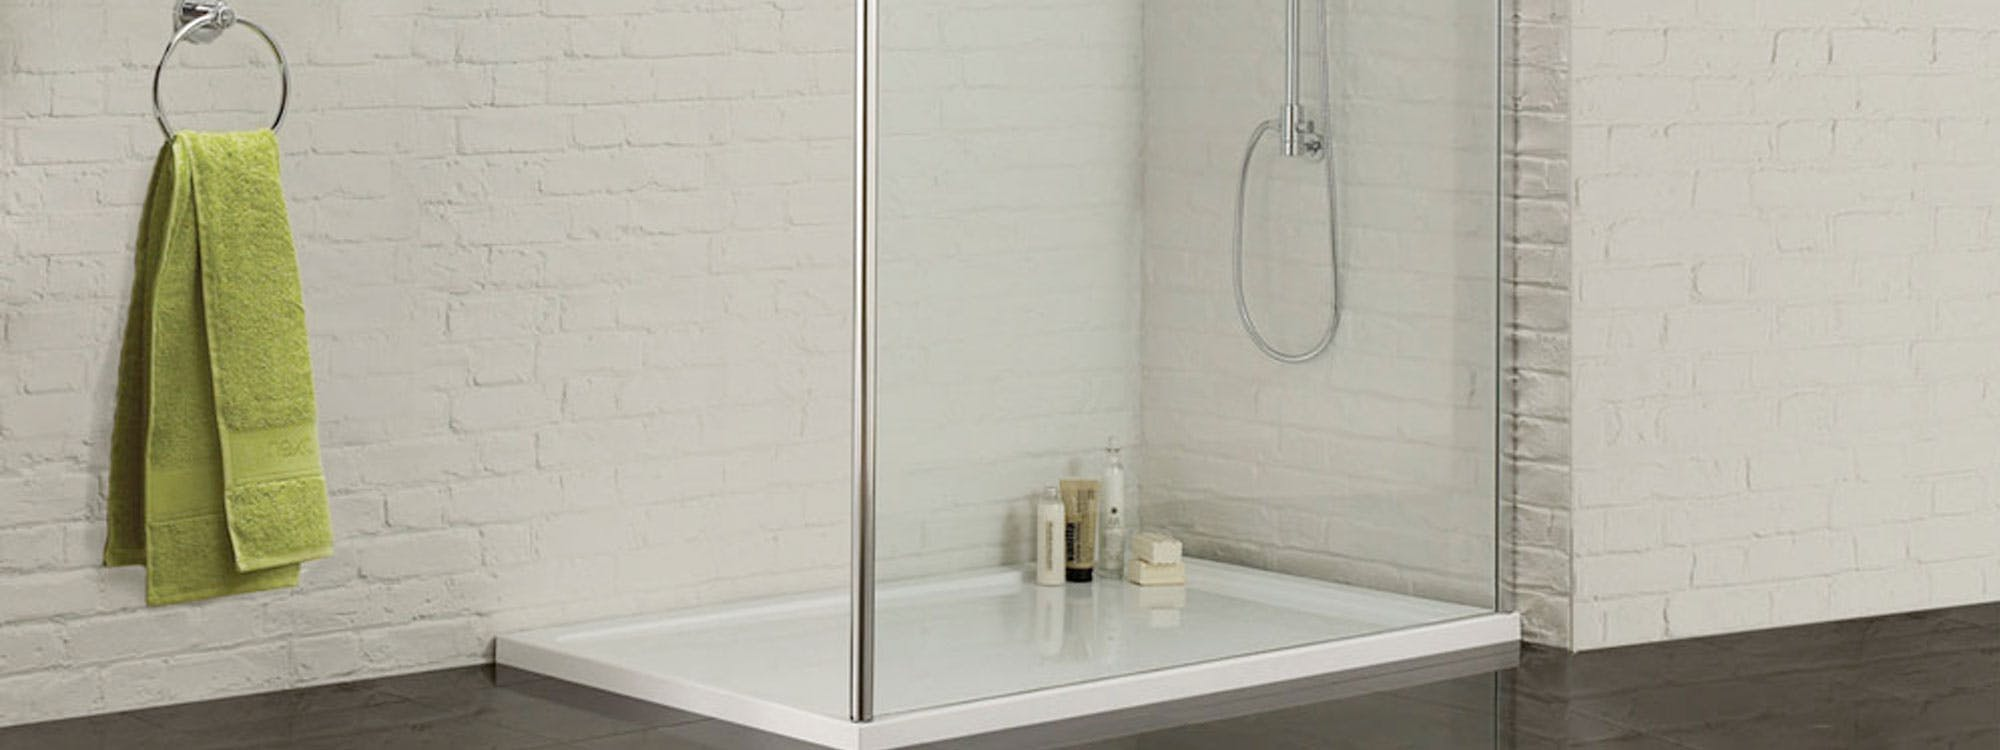 An easily accessible walk-in shower solution provides a safe & stylish alternative to traditional showering thanks to the low or level access slip resistant tray.